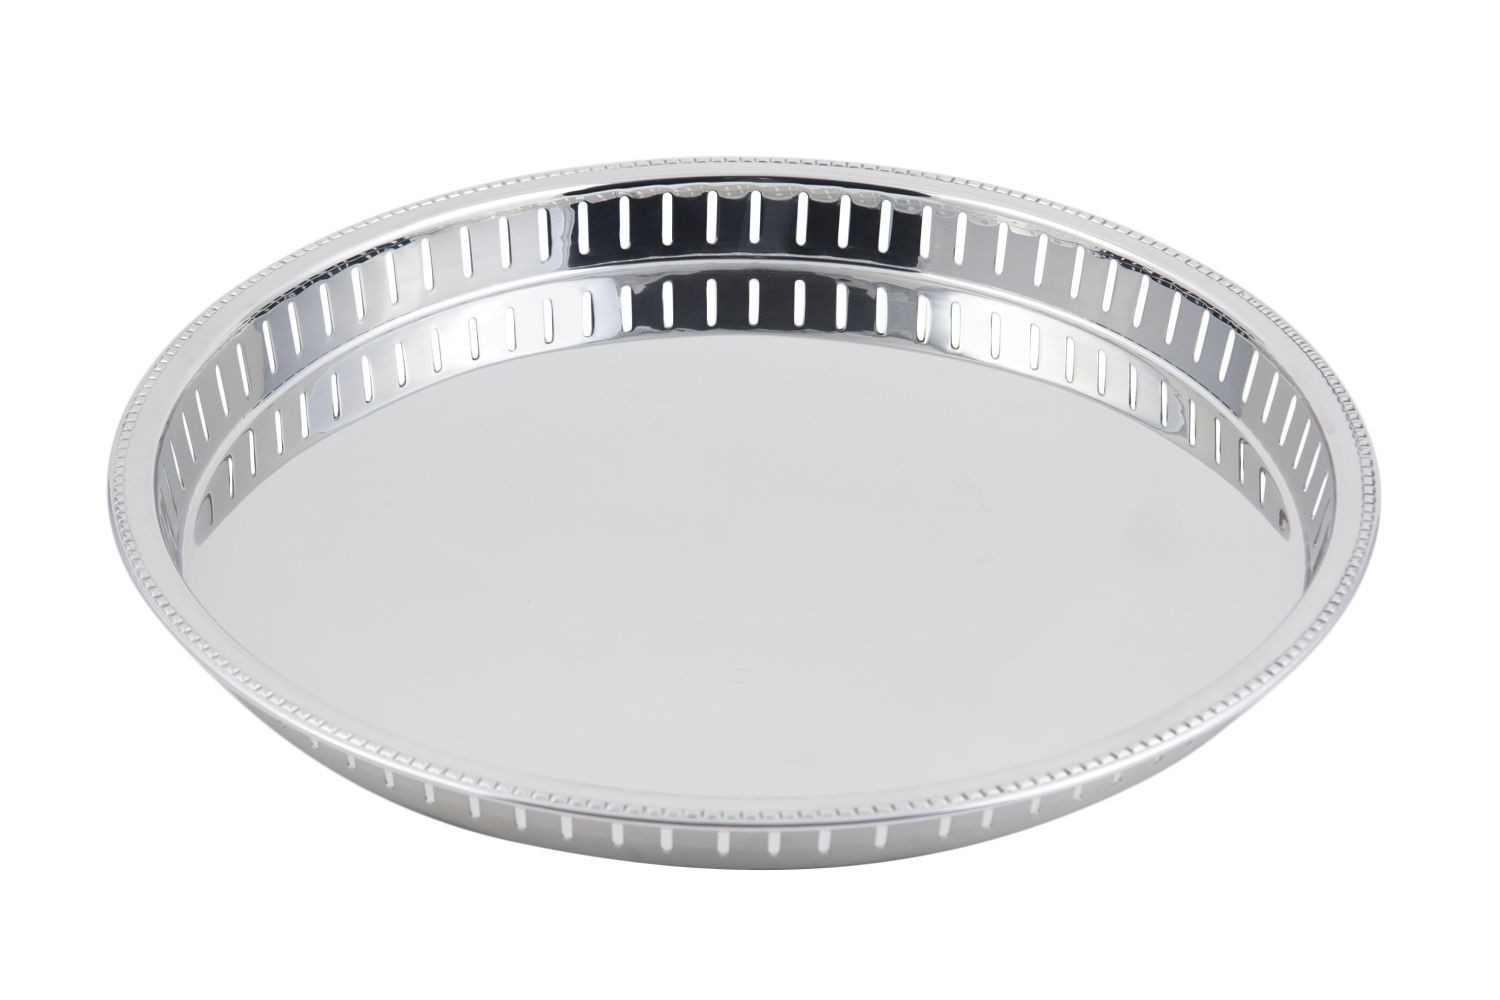 "Bon Chef 61341 Stainless Steel Bar Tray with Bead Rim, 15"" Dia."